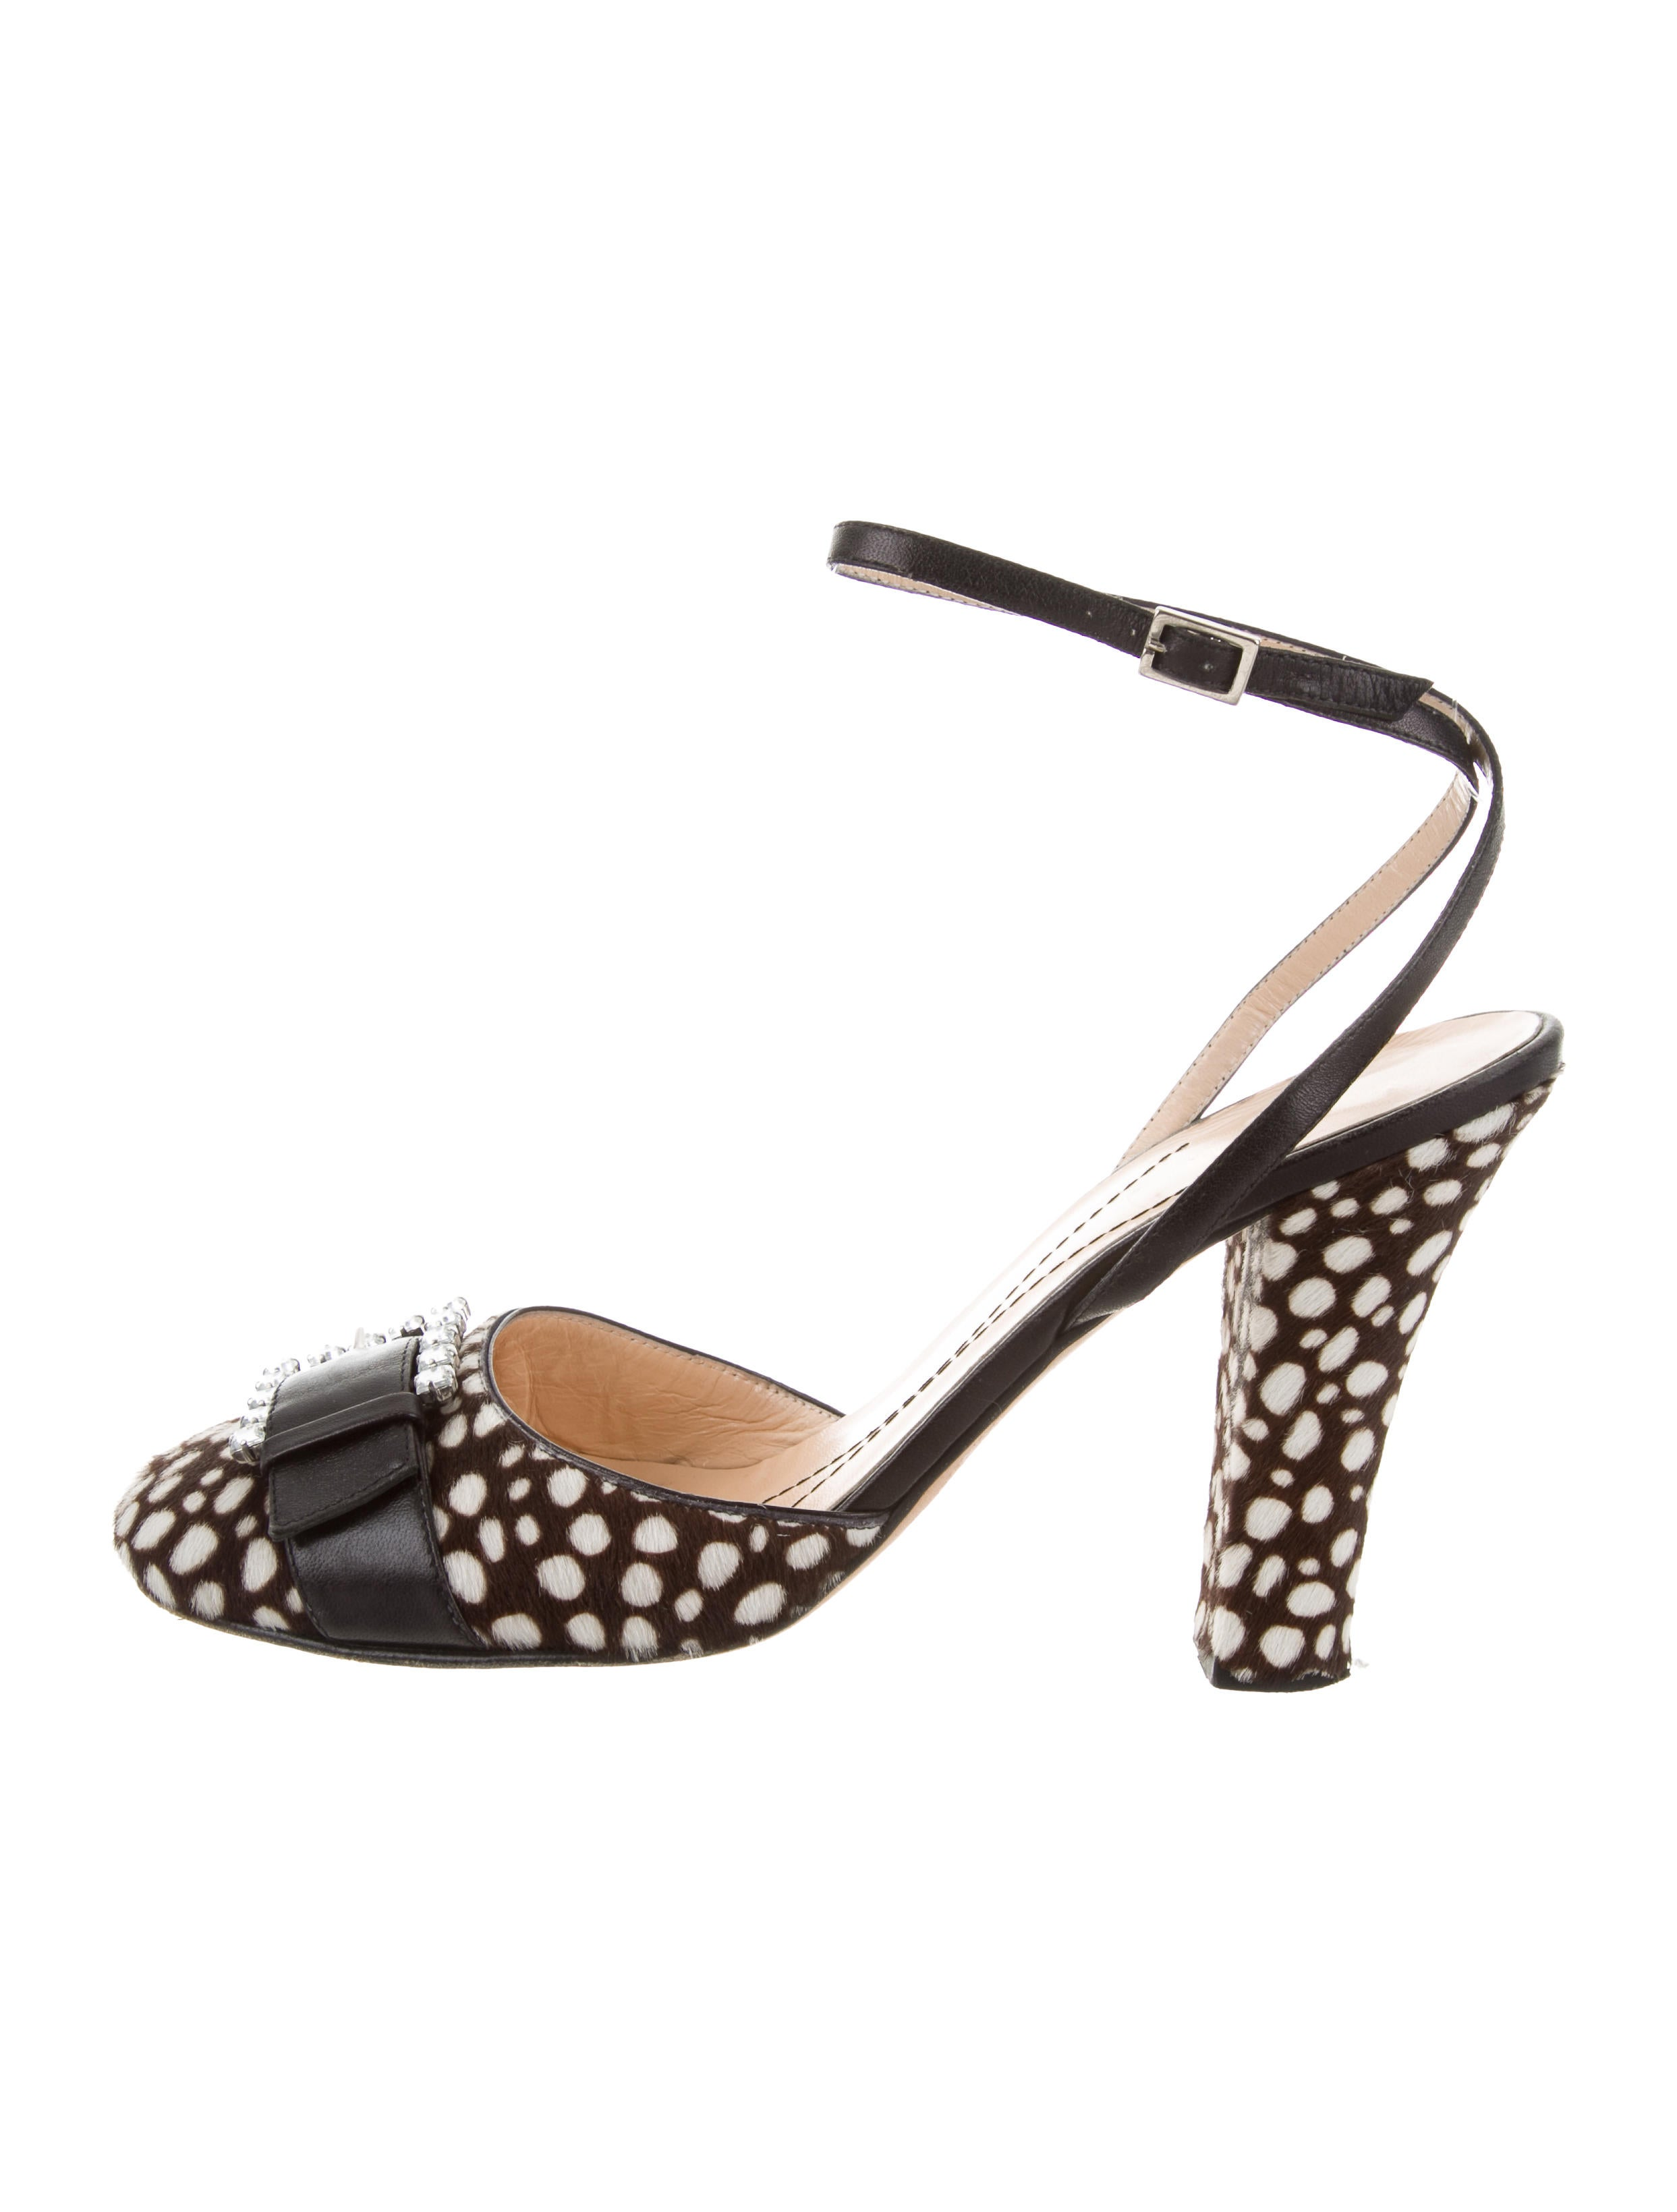 Kate Spade New York Ponyhair Square-Toe Pumps clearance high quality order for sale huge surprise for sale outlet low shipping fee with paypal cheap online 0IYtvuGC